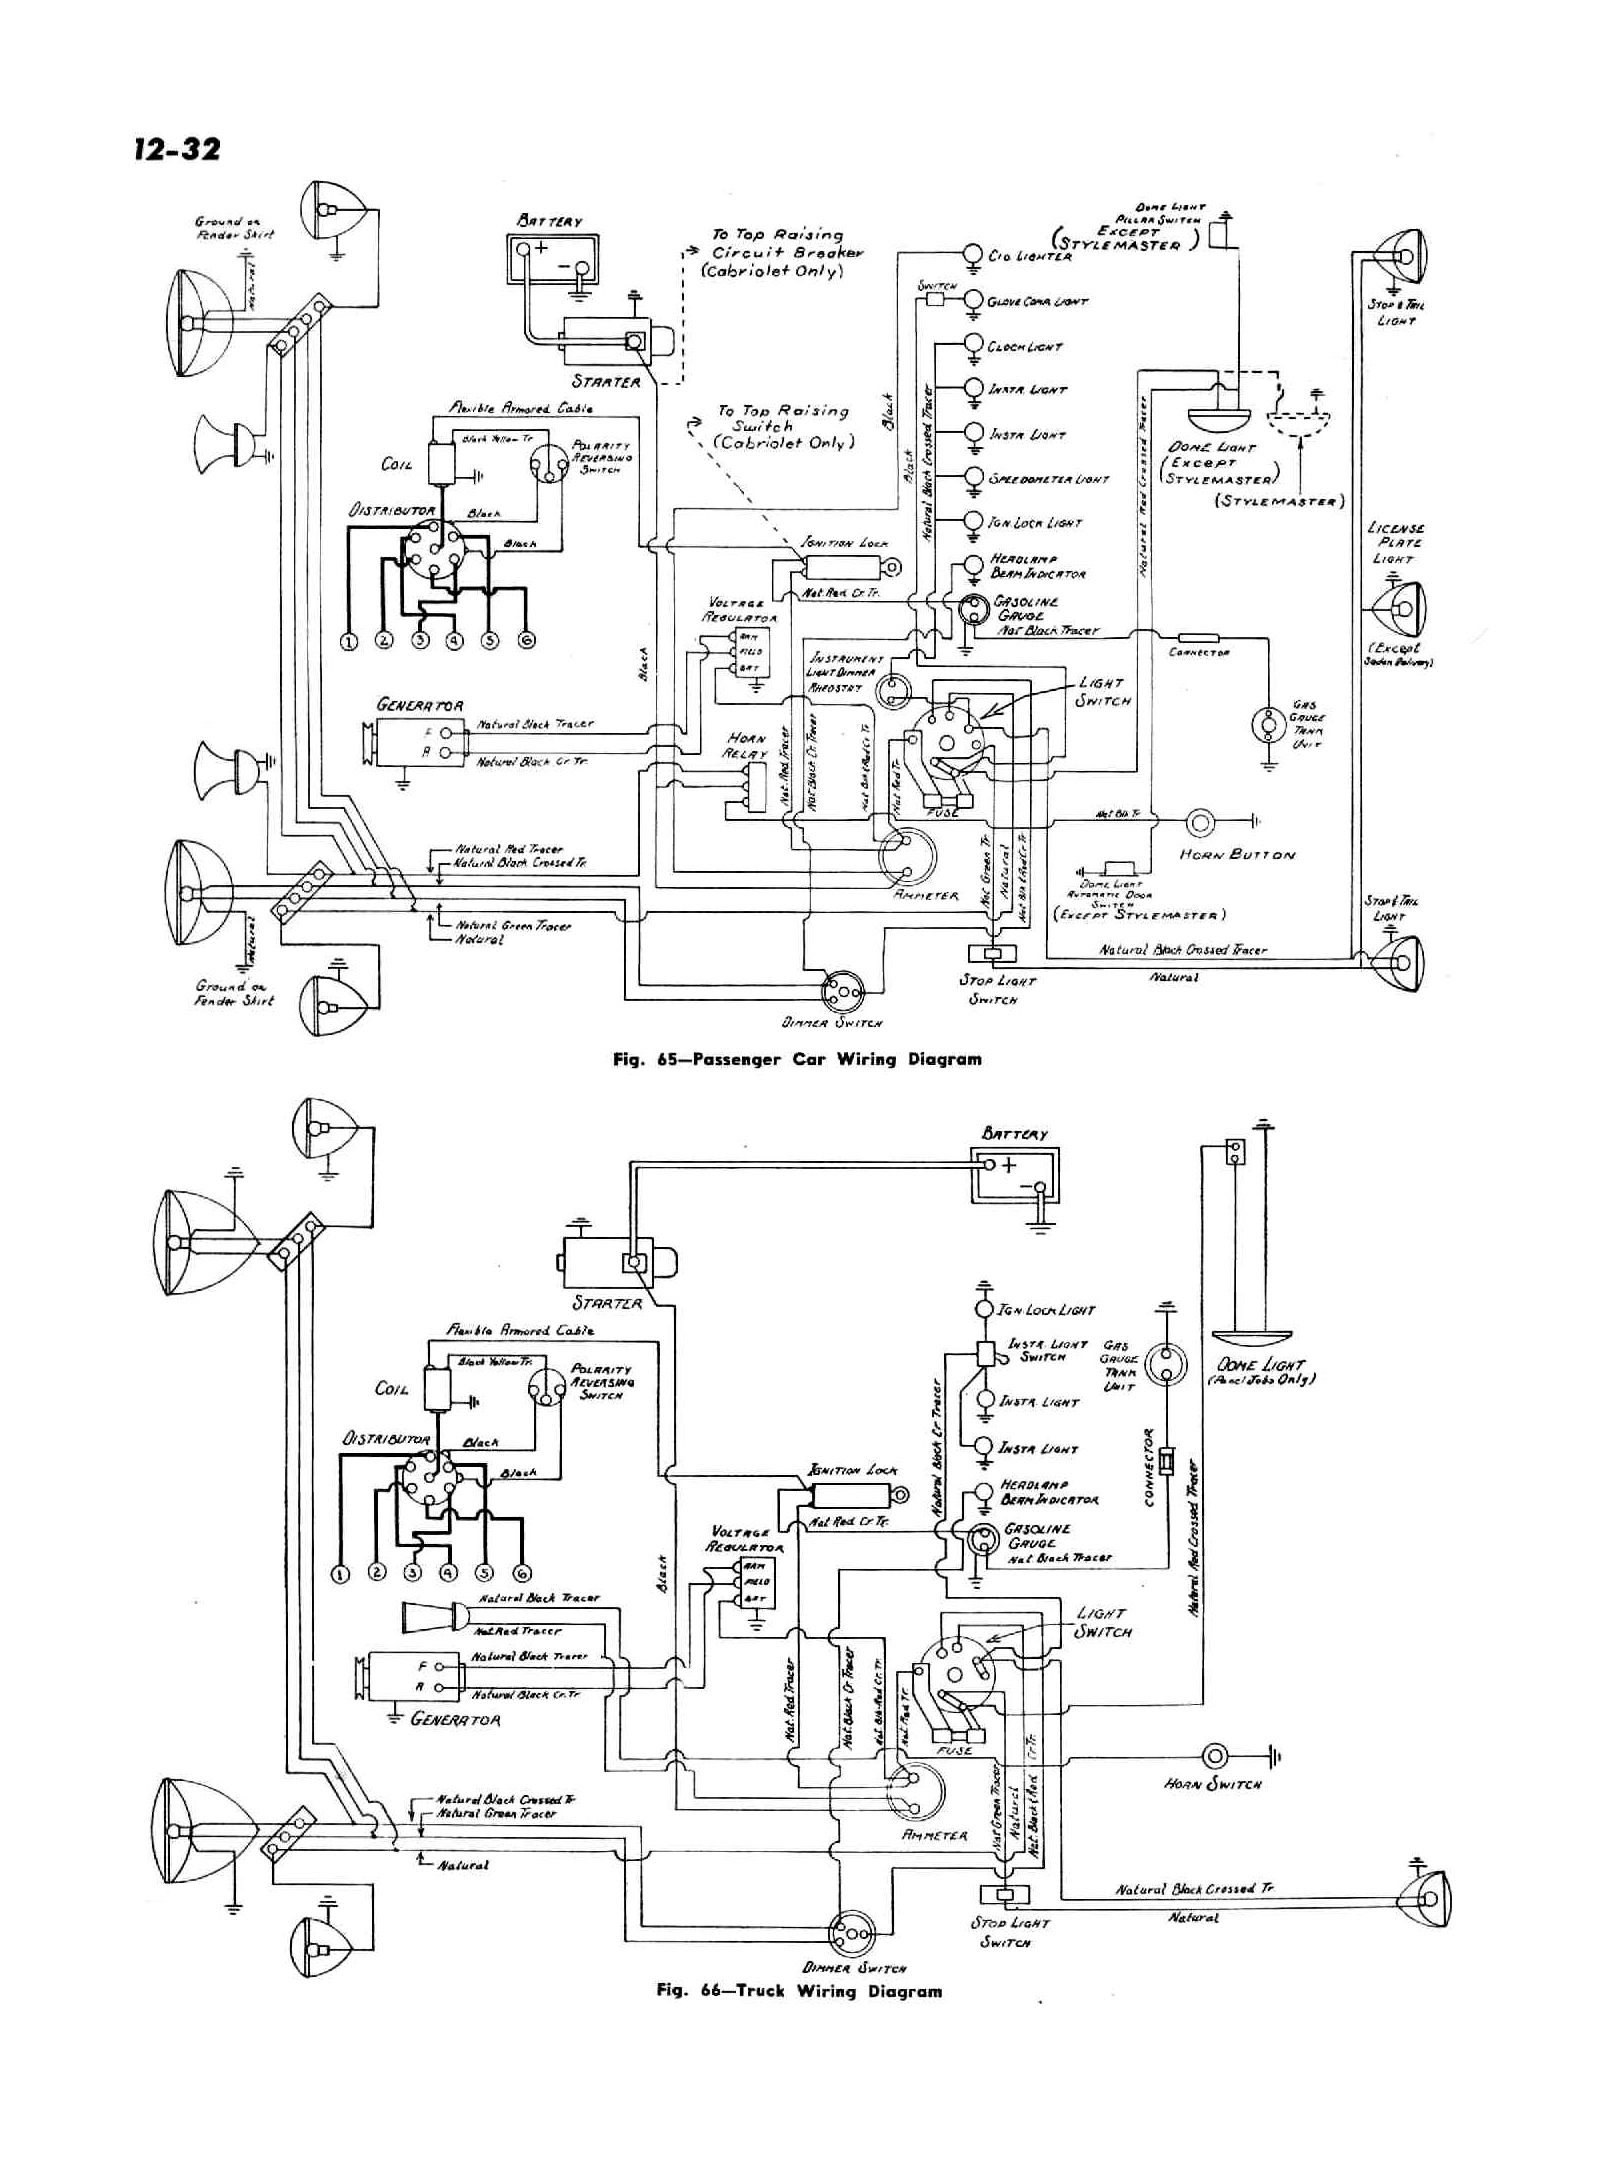 6 volt rv battery wiring diagram with 6 Volt Generator Wiring Diagram on 2007 Dodge Caliber Serpentine Belt Diagram Without Ac Wiring Diagrams besides Lm350 Wiring Diagram additionally Battery Isolator further Wiring Your Battery Bank In Series Parallel And Series Parallel as well Monarch Hydraulic Pump Wiring Diagram.